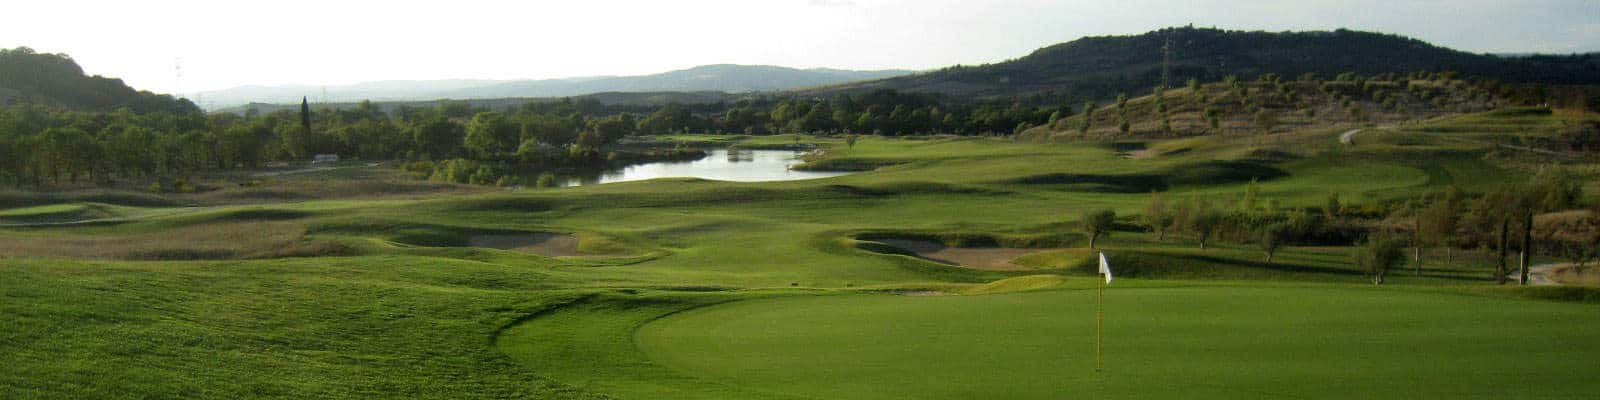 Tuscany: paradise for professional golfers